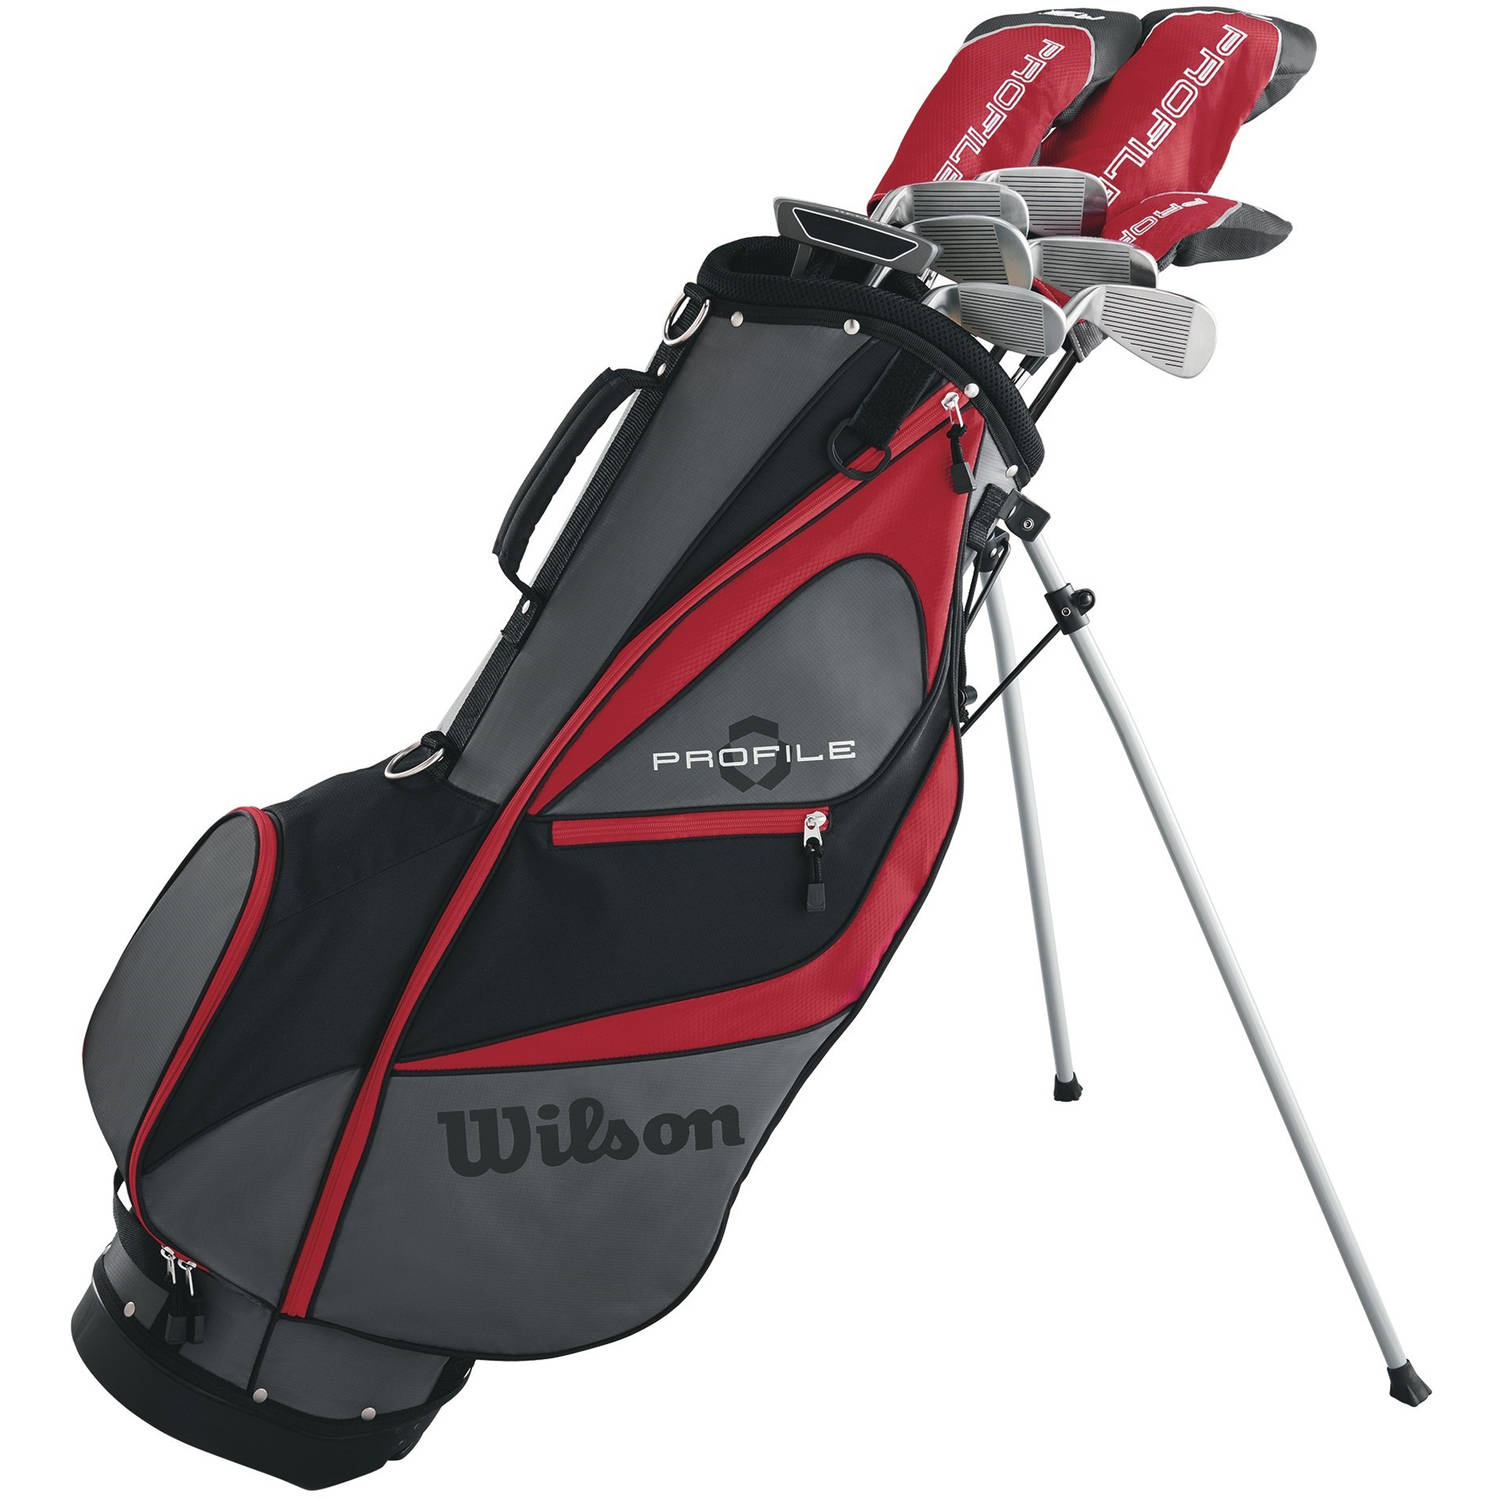 Wilson Profile XD Mens Package Golf Set, Carry, Right Handed by Wilson Sporting Goods Co.